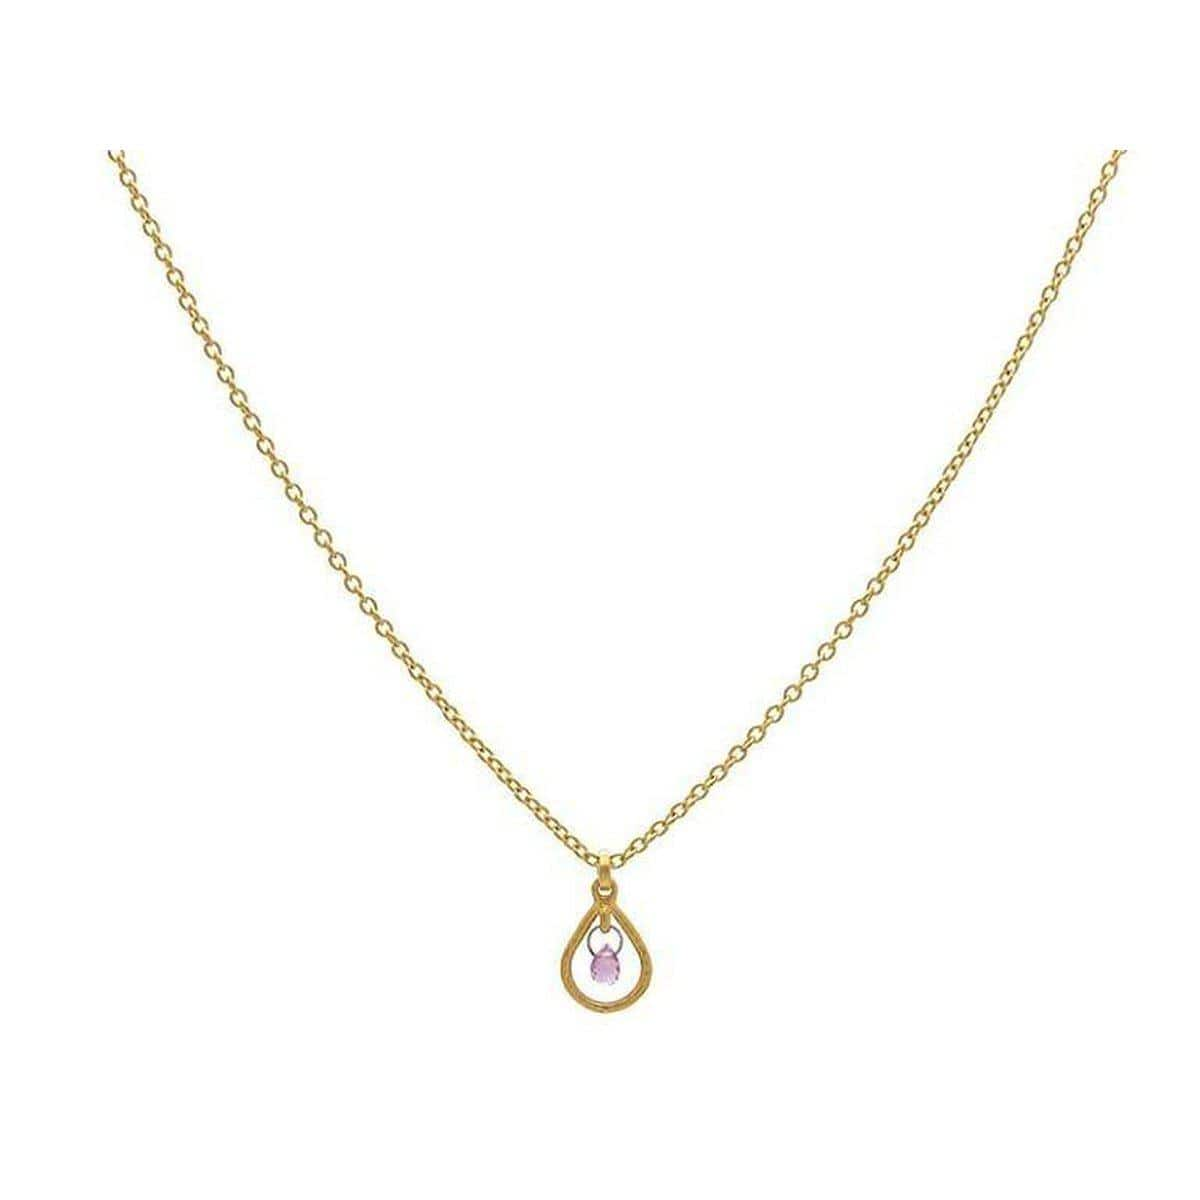 Delicate Hue 24K Gold Sapphire Necklace - CHN-FSB-1FR-1PN-18-GURHAN-Renee Taylor Gallery